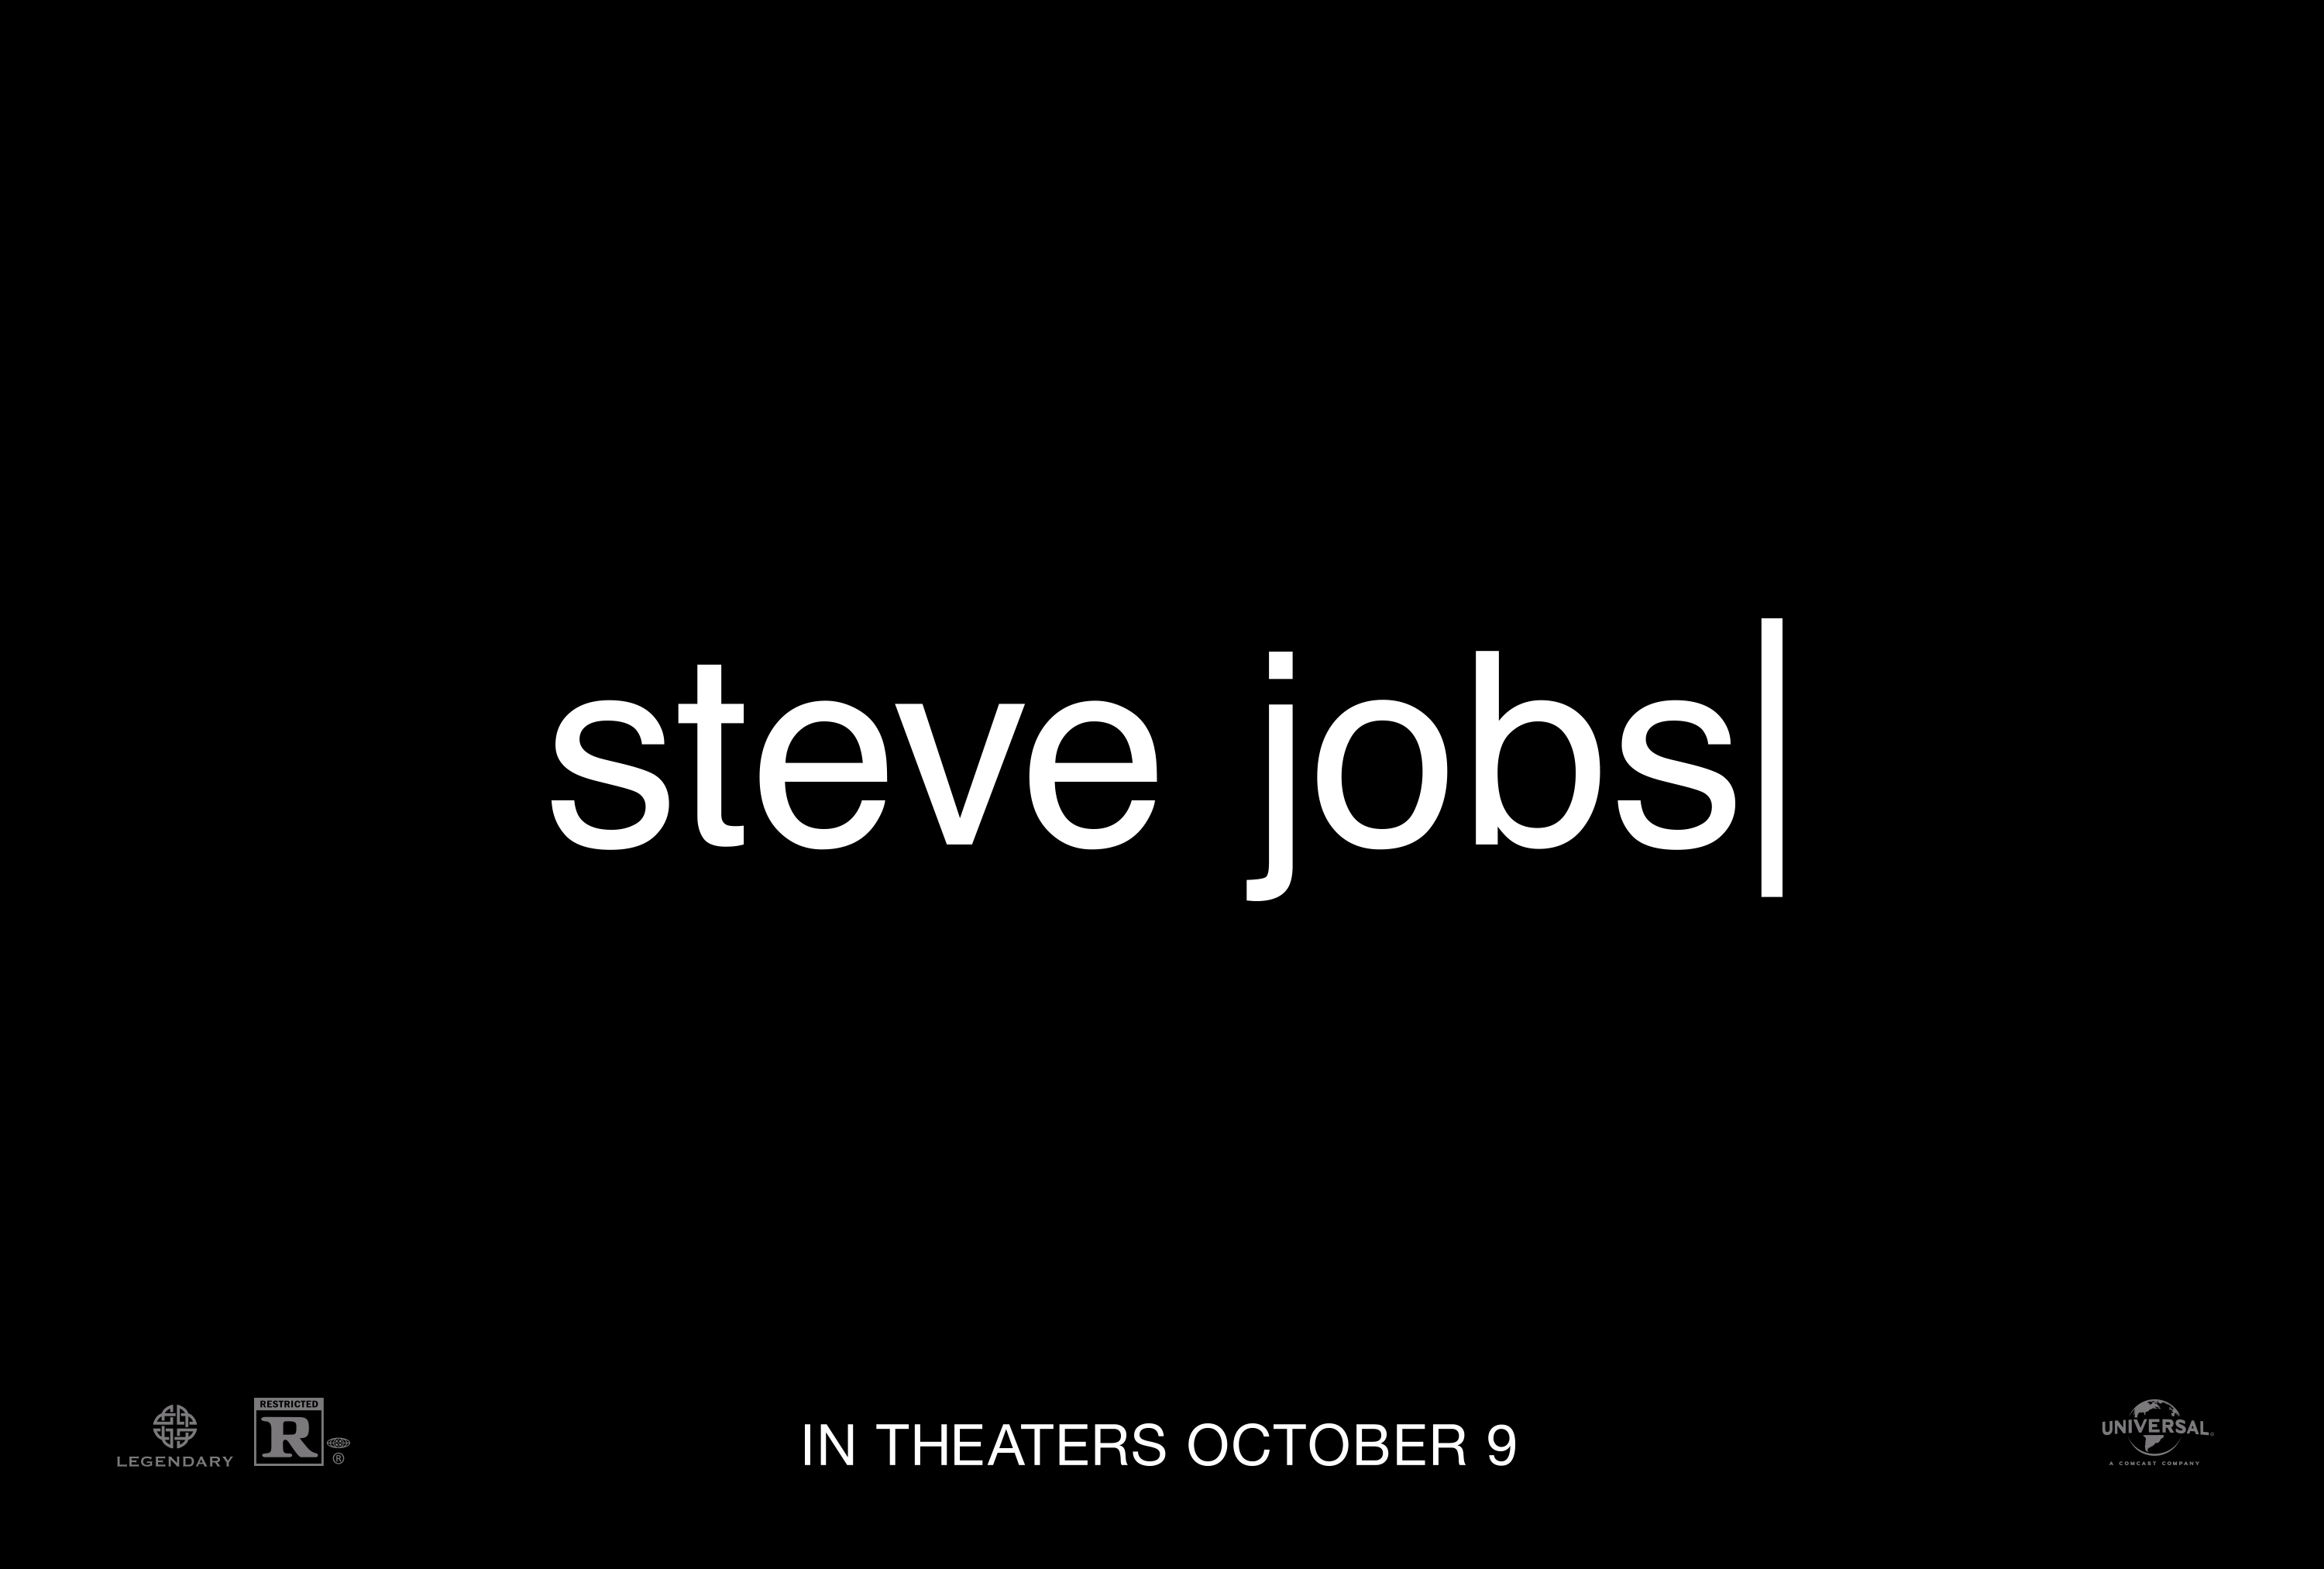 Steve Jobs review: screenplay captures the dark side of tech icon